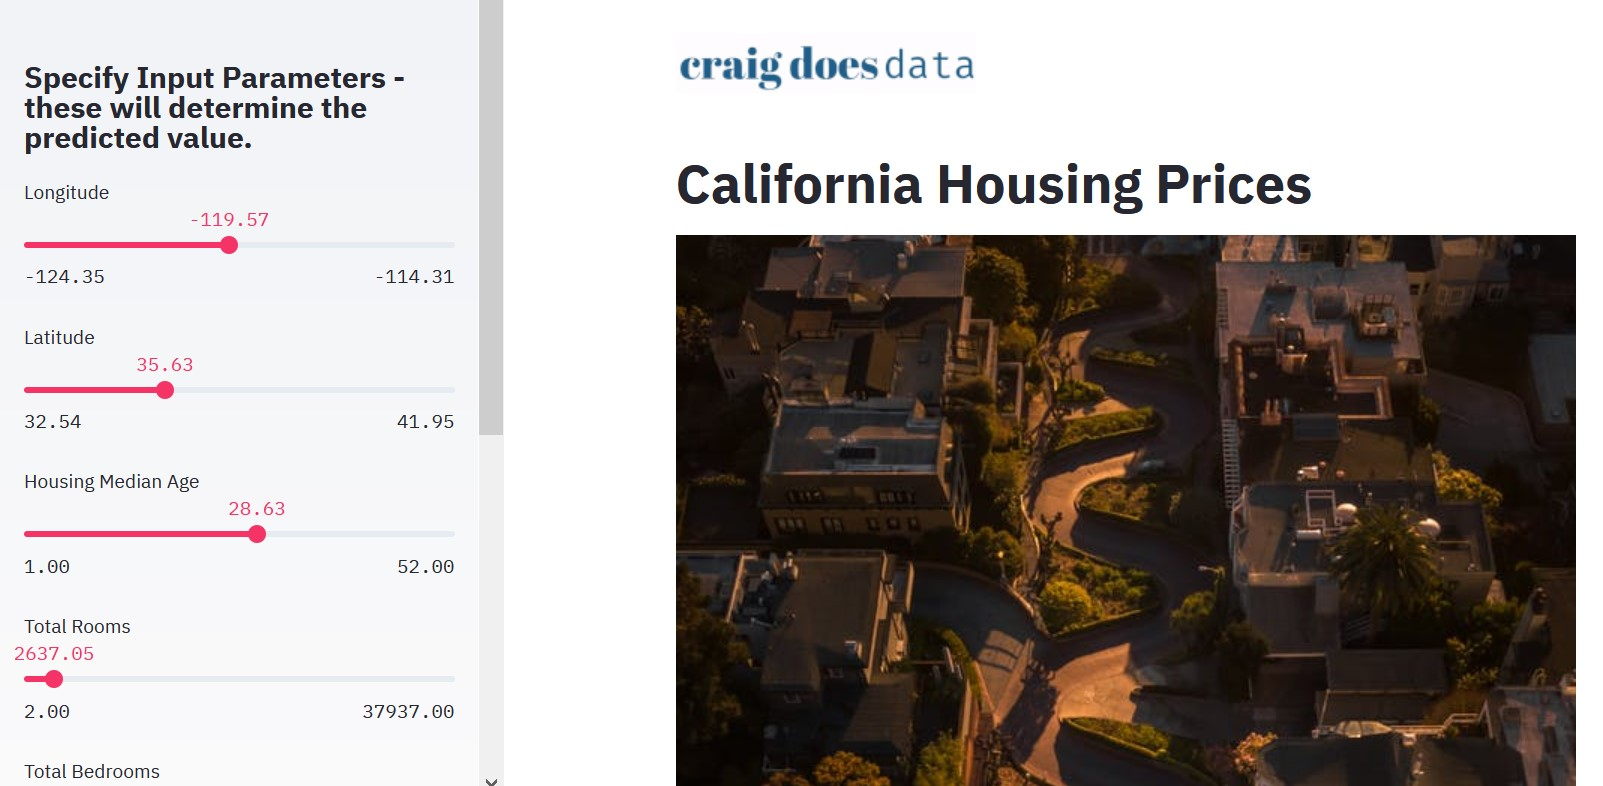 A screenshot of the California Housing Prices Web Application